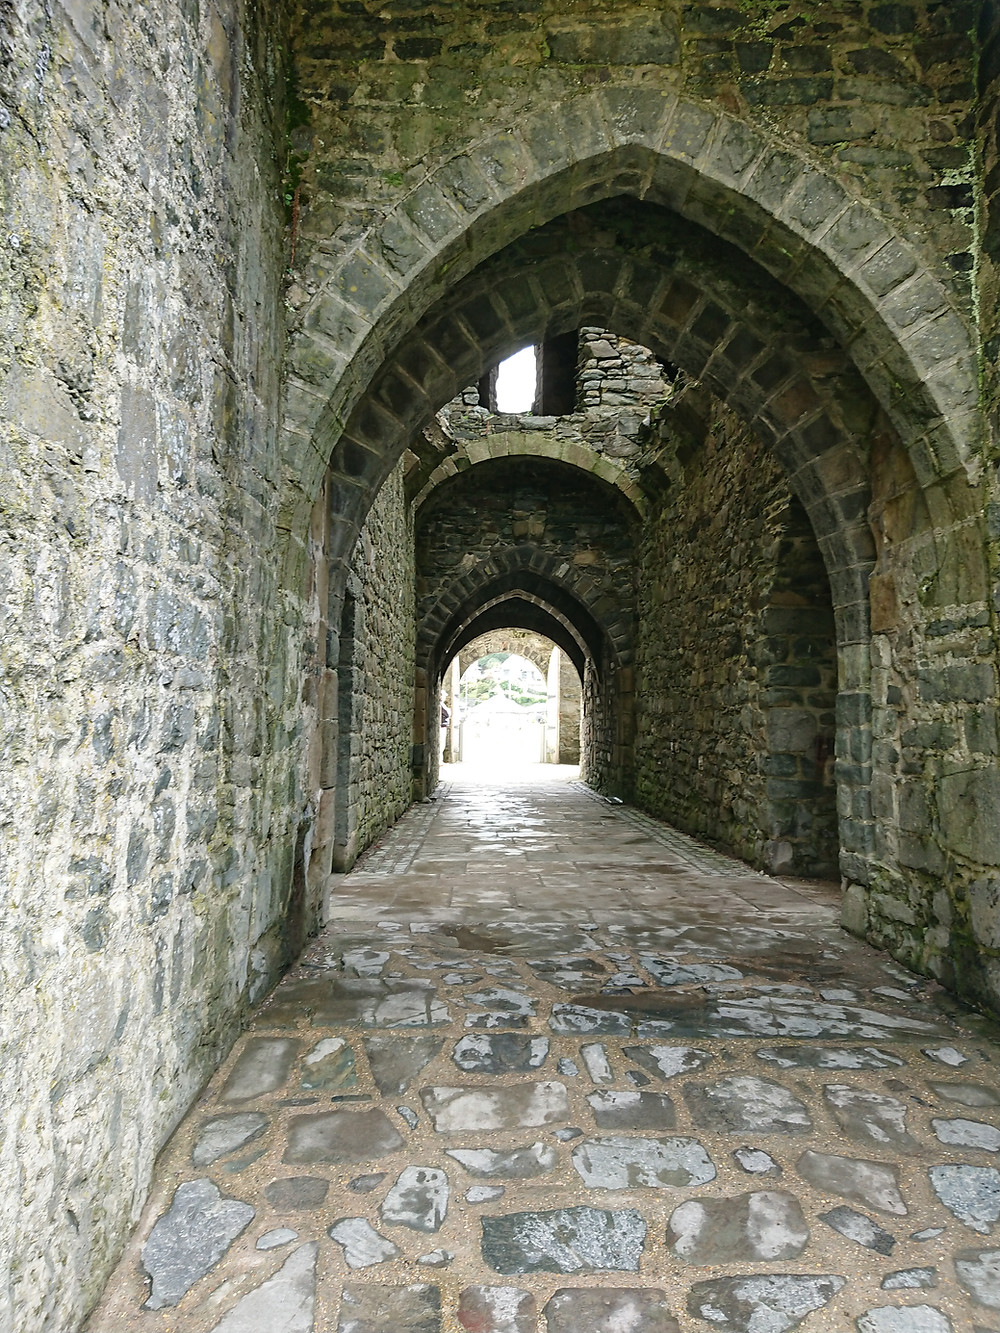 Inside Harlech Castle in Norgh Wales. Medieval stronghold built by Edward I, king of England